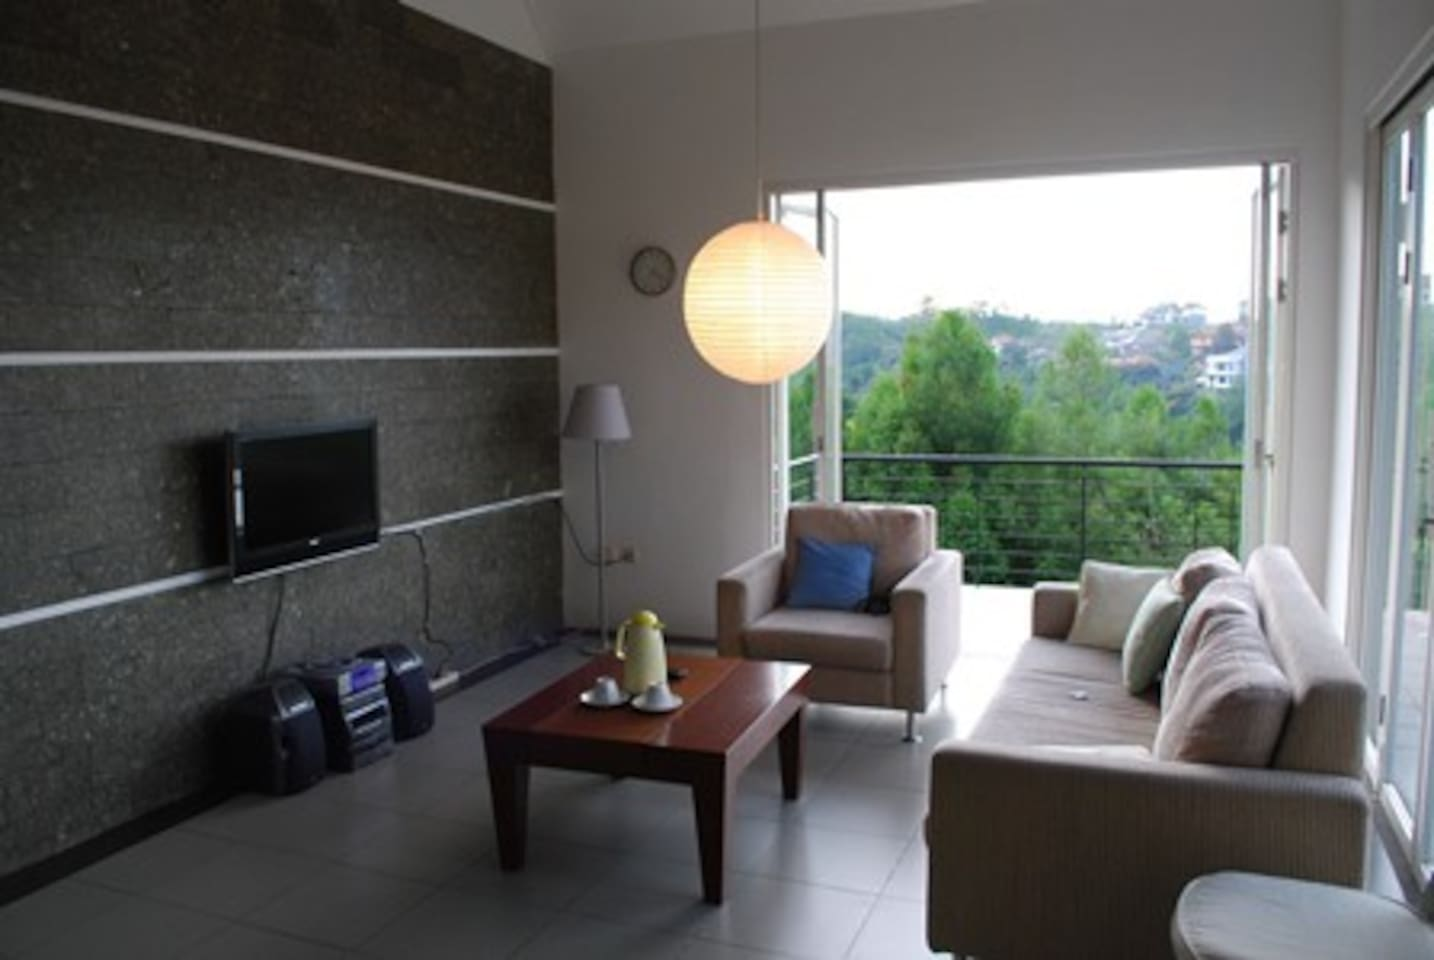 Family Room to gather your groups. Enjoy the cable TV and the Sofa as you breathe the clean air of Bandung.